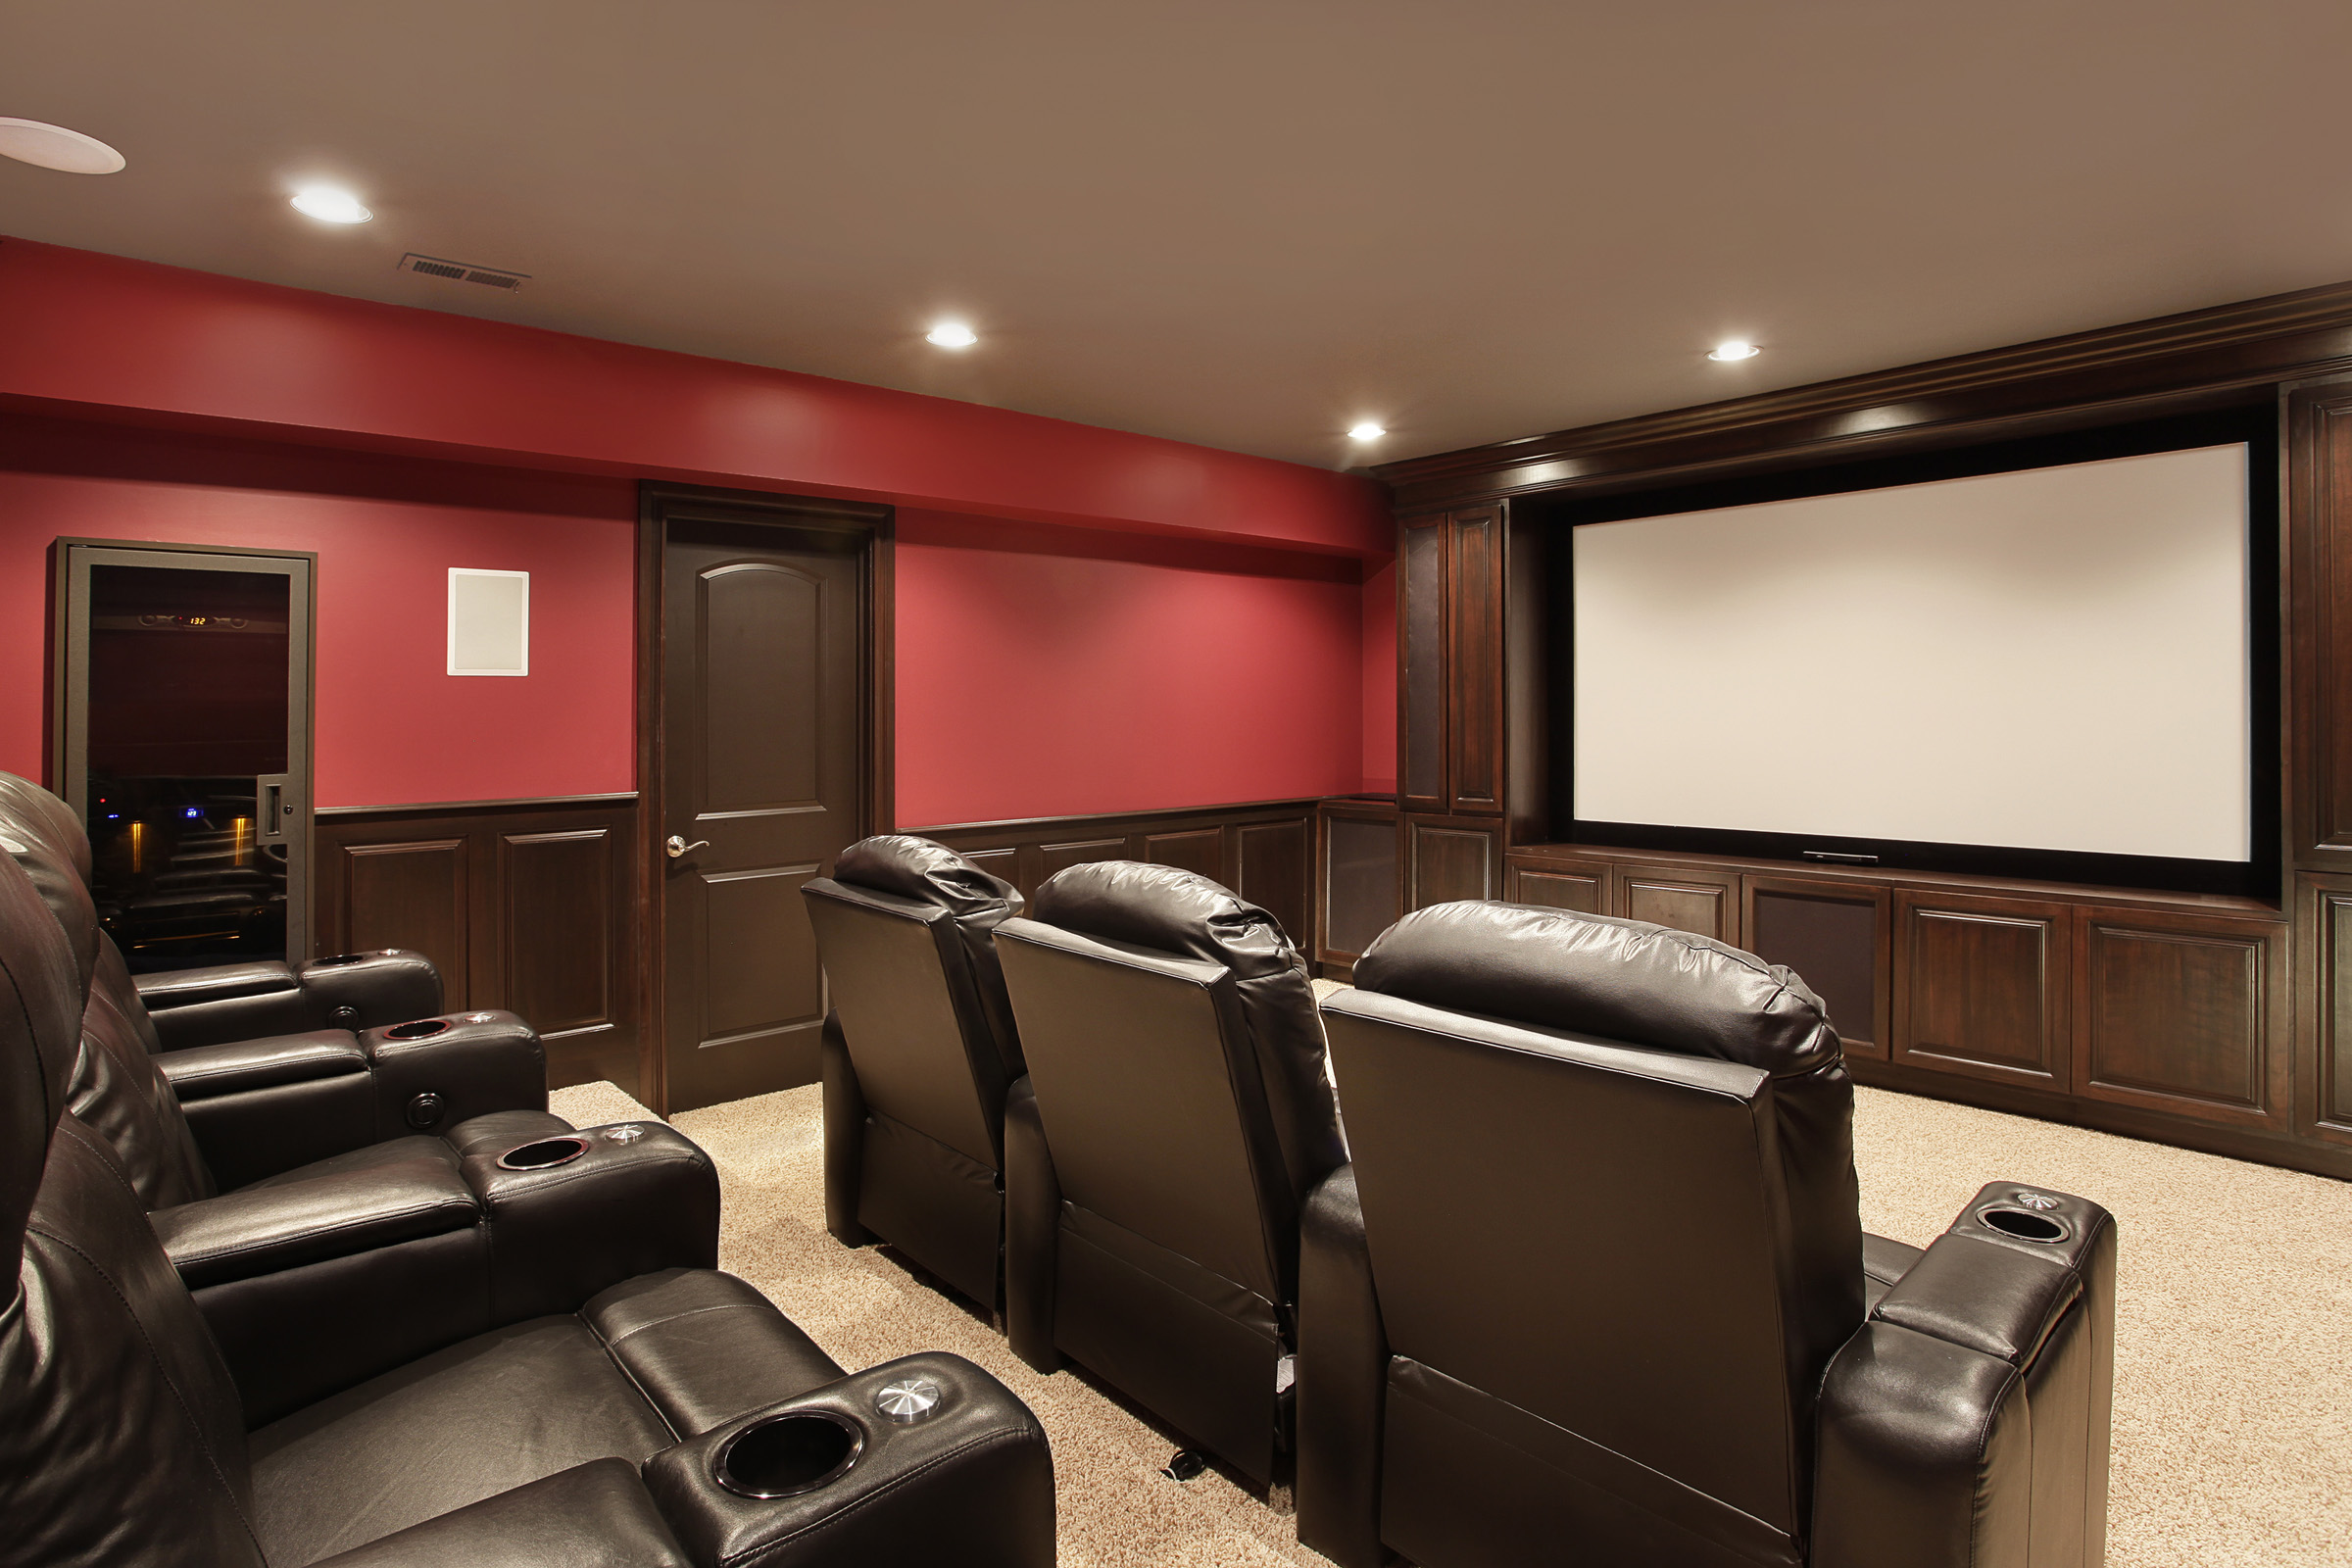 Garage Heater Placement Orlando Home Theater Systems Home Theater Solutions